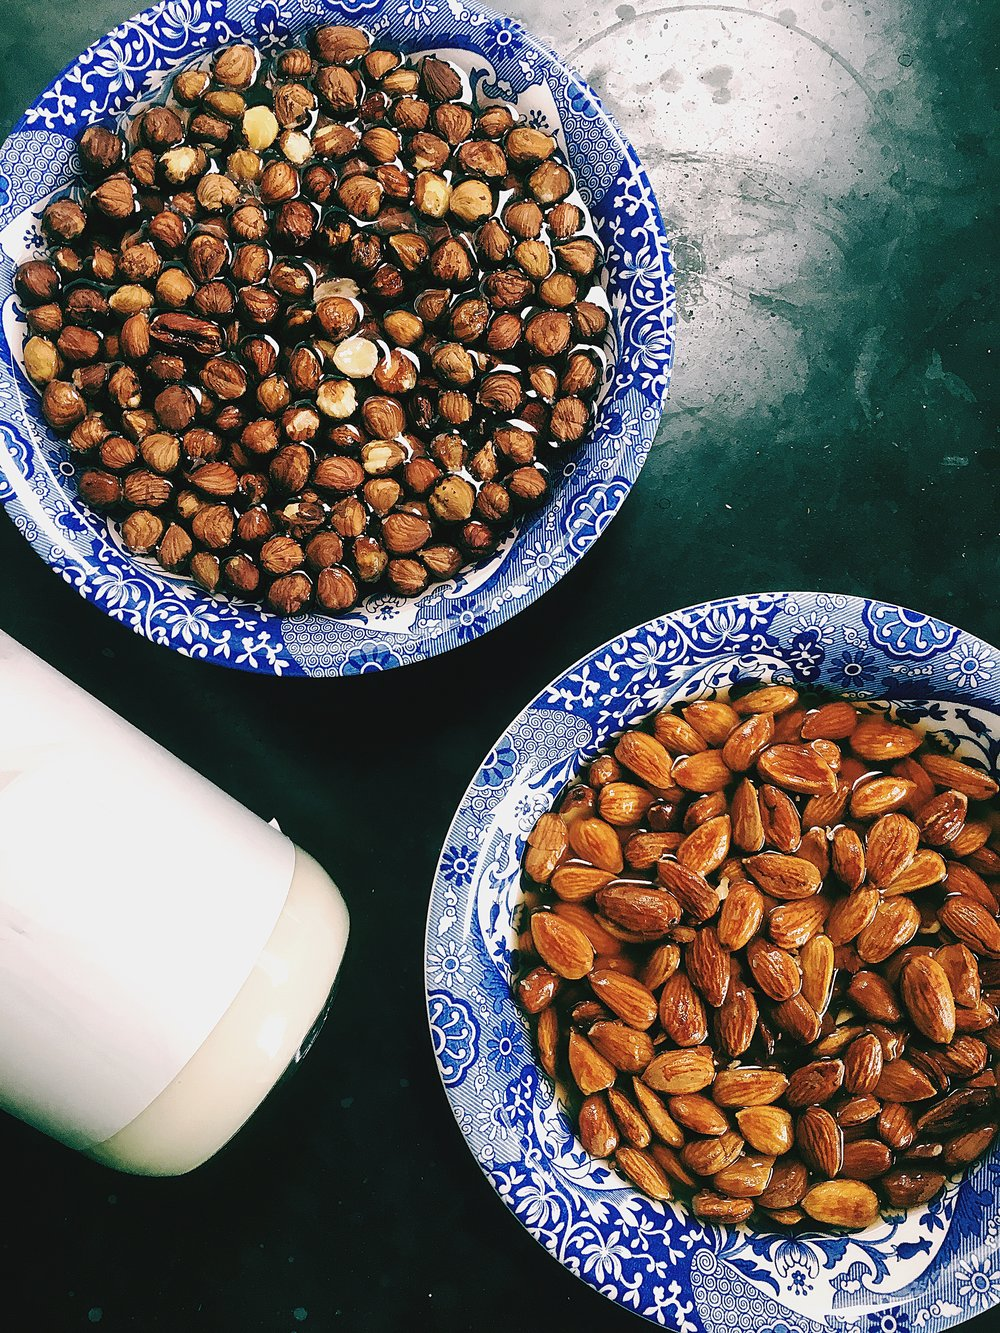 Hazelnuts & Almonds...with a peek at some home made almond milk kefir